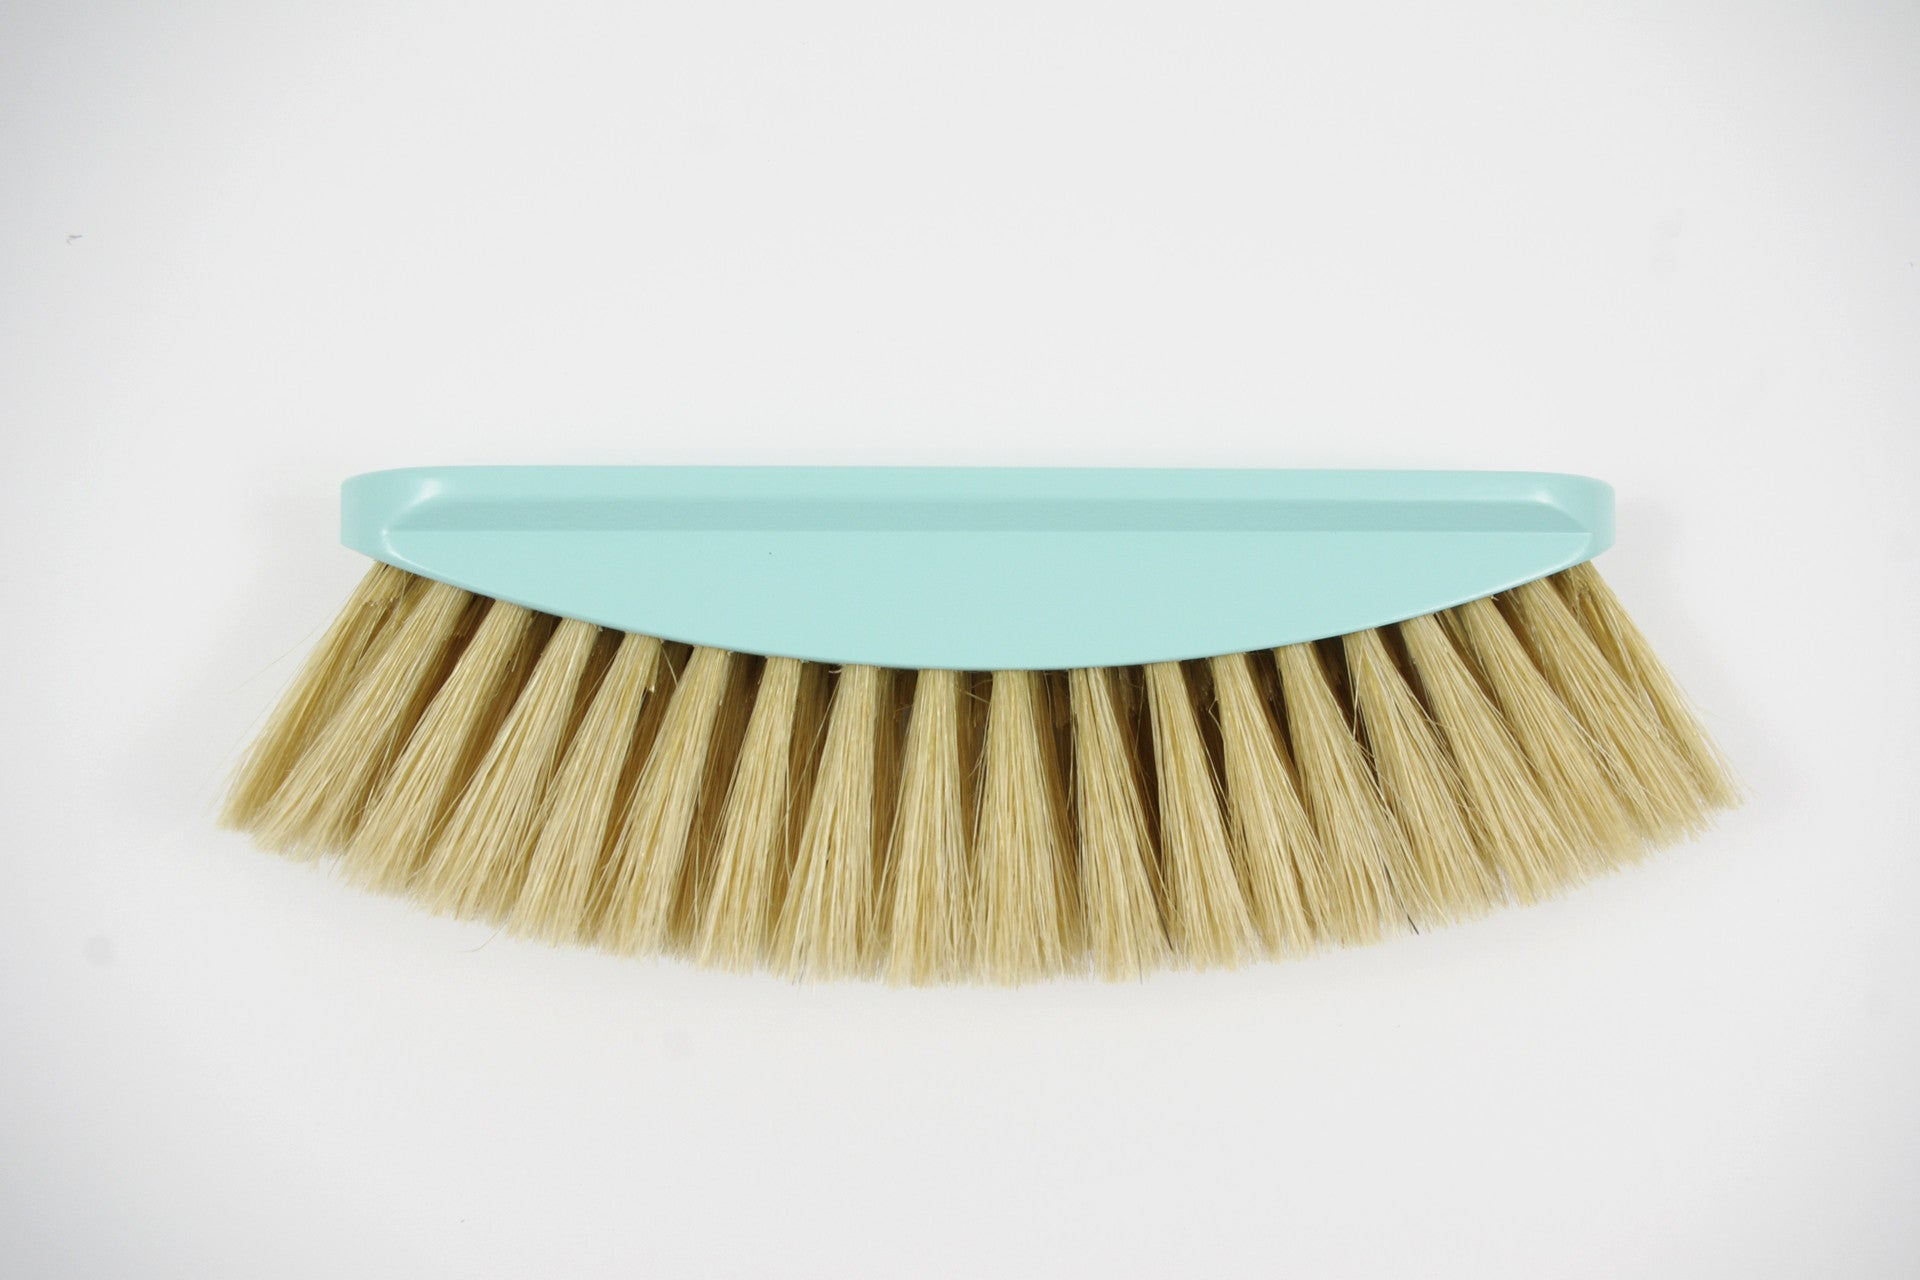 Beech and Silk Dusting Brush